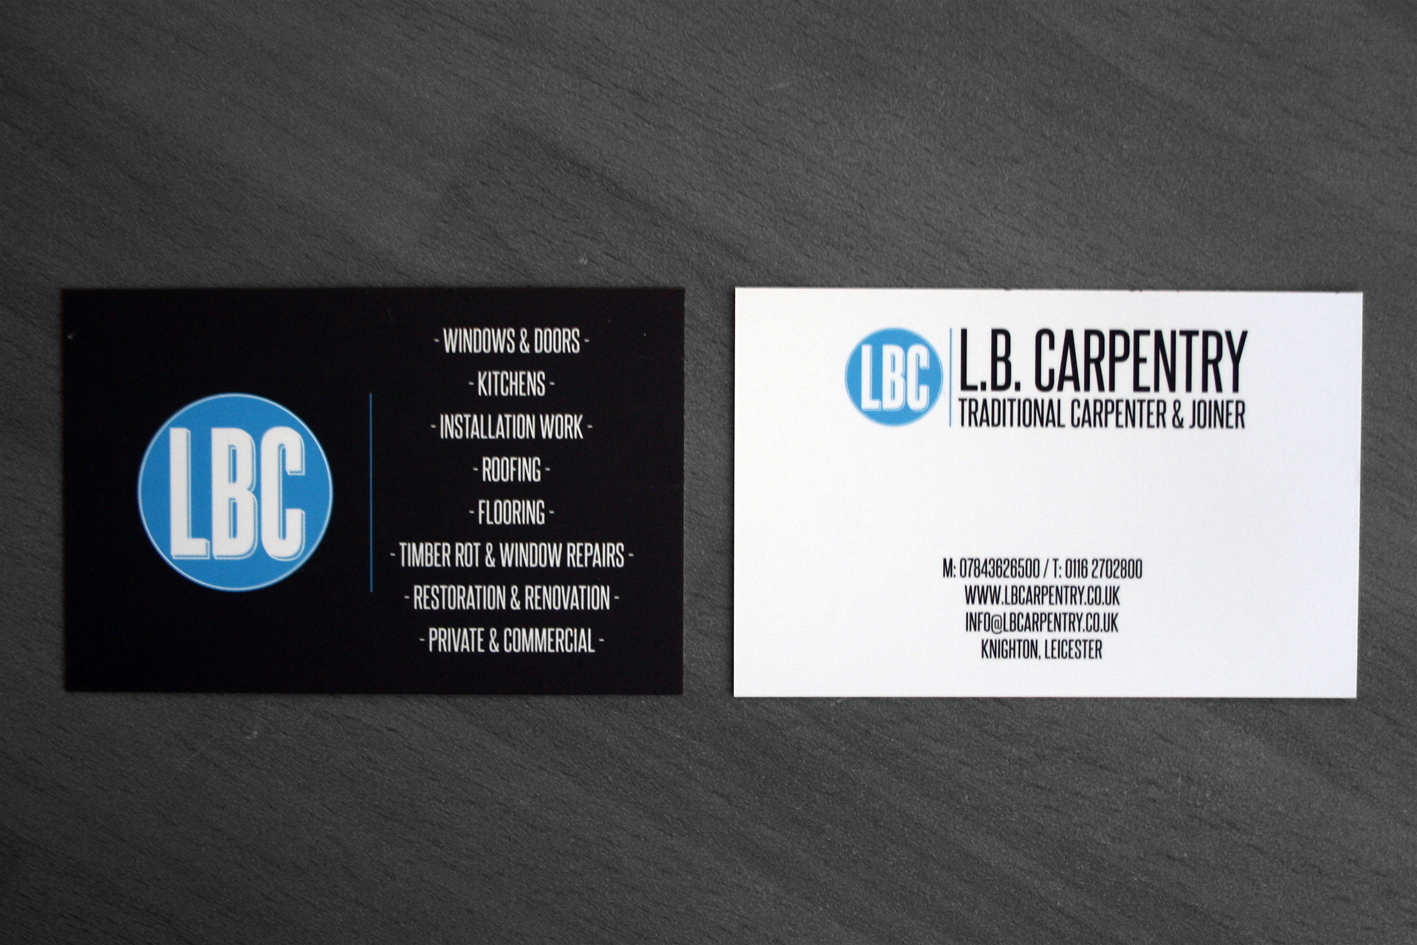 Lb carpentry business cards dominic palmer back magicingreecefo Gallery